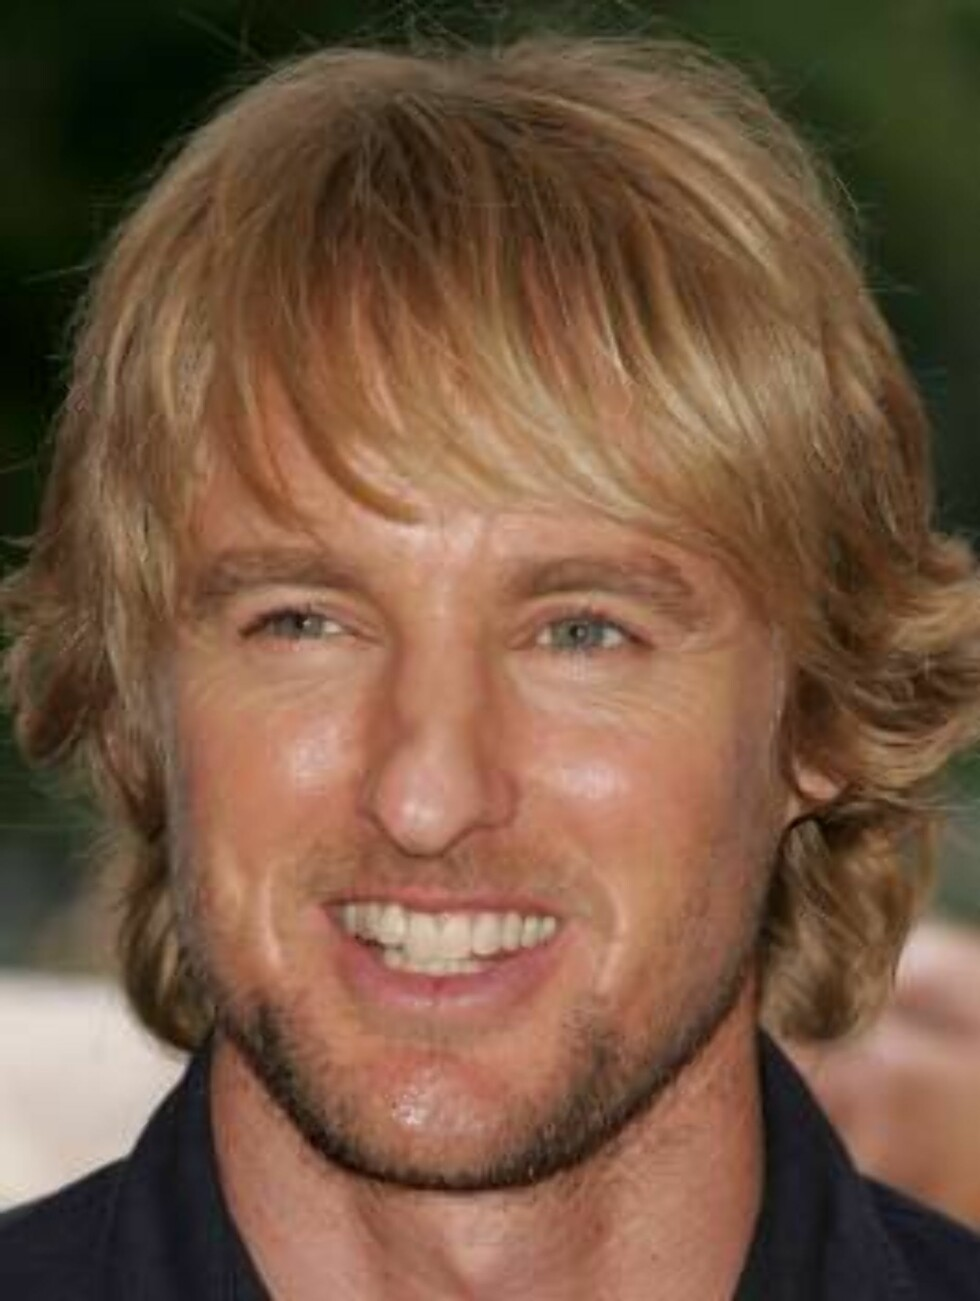 """NEW YORK - JULY 12:  Actor Owen Wilson attends the 20th Century Fox Premiere of  """"My Super Ex-Girlfriend"""" on July 12, 2006 in New York City.  (Photo by Peter Kramer/Getty Images) *** Local Caption *** Owen Wilson  * SPECIAL INSTRUCTIONS:  * *OBJECT NAME: Foto: All Over Press"""